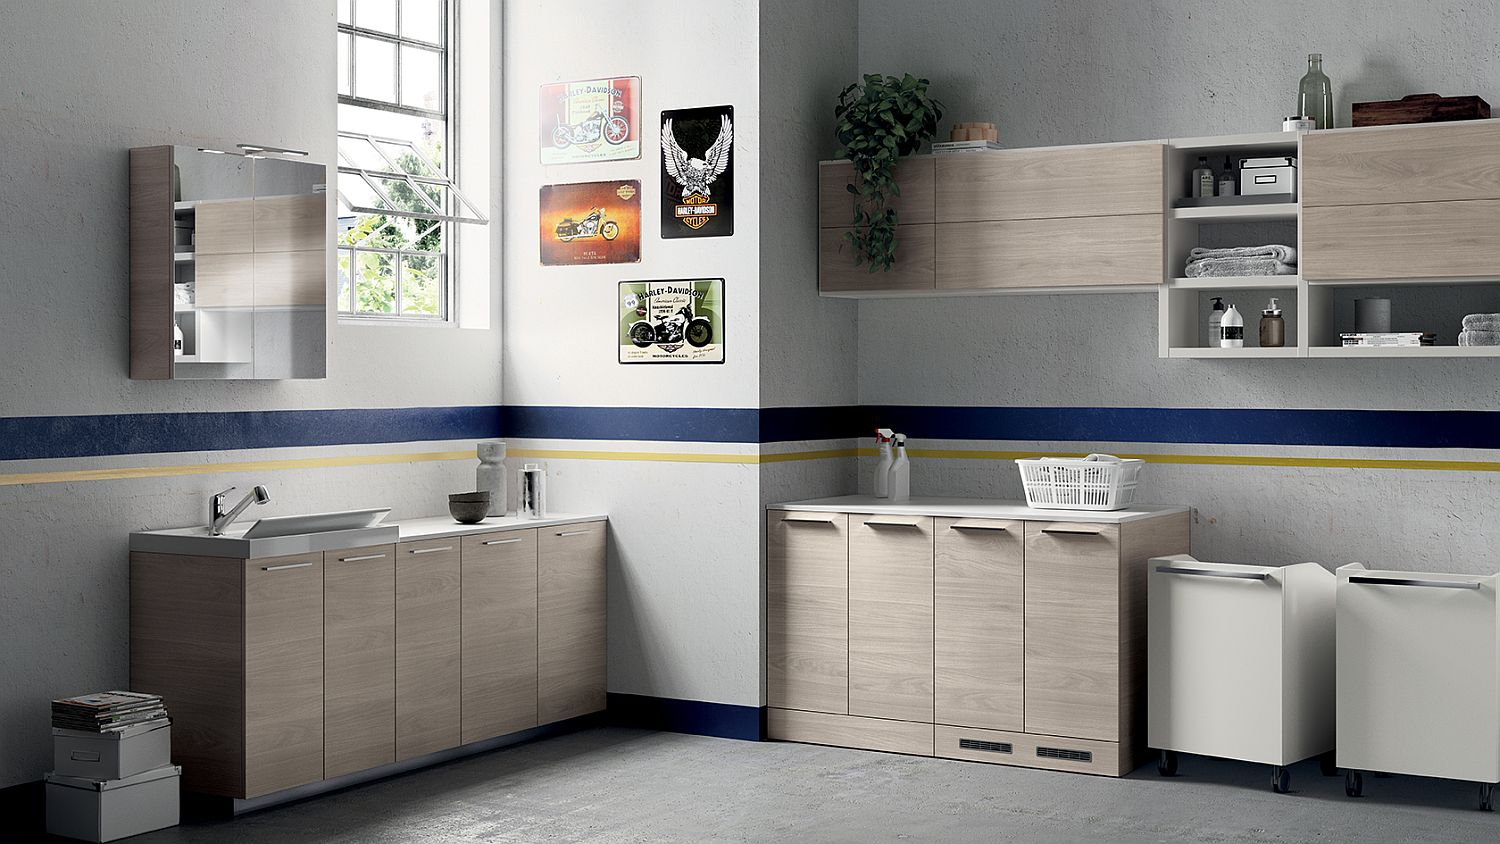 Light-filled bathroom and laundry space composition